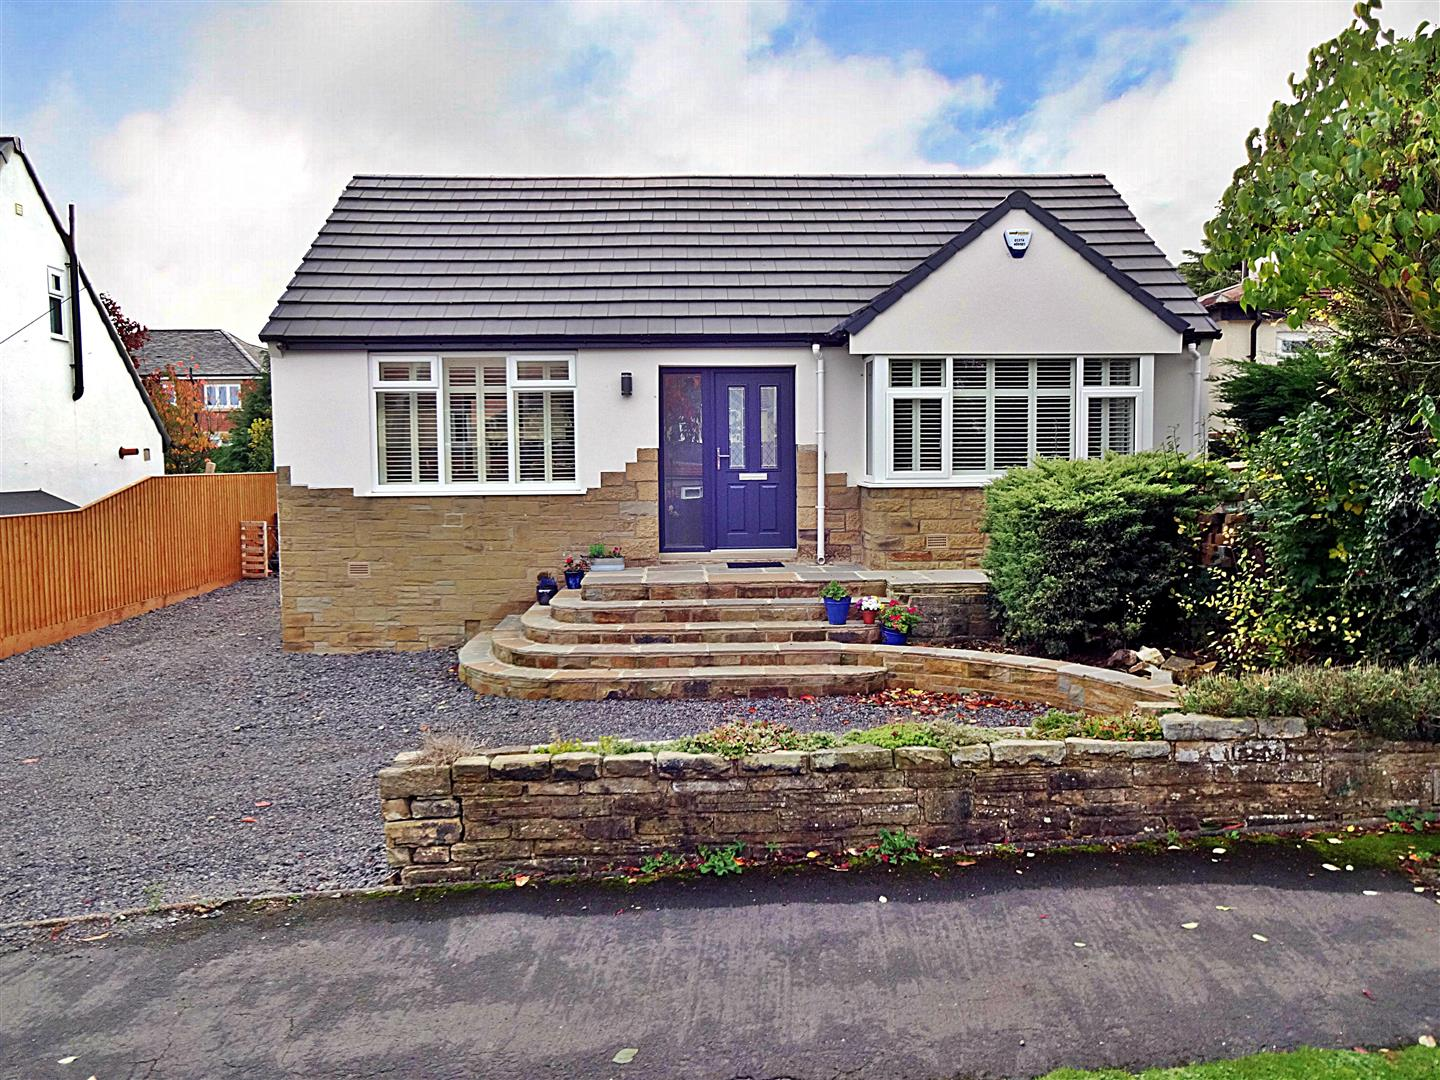 Endor Crescent, Burley in Wharfedale, LS29 7QH